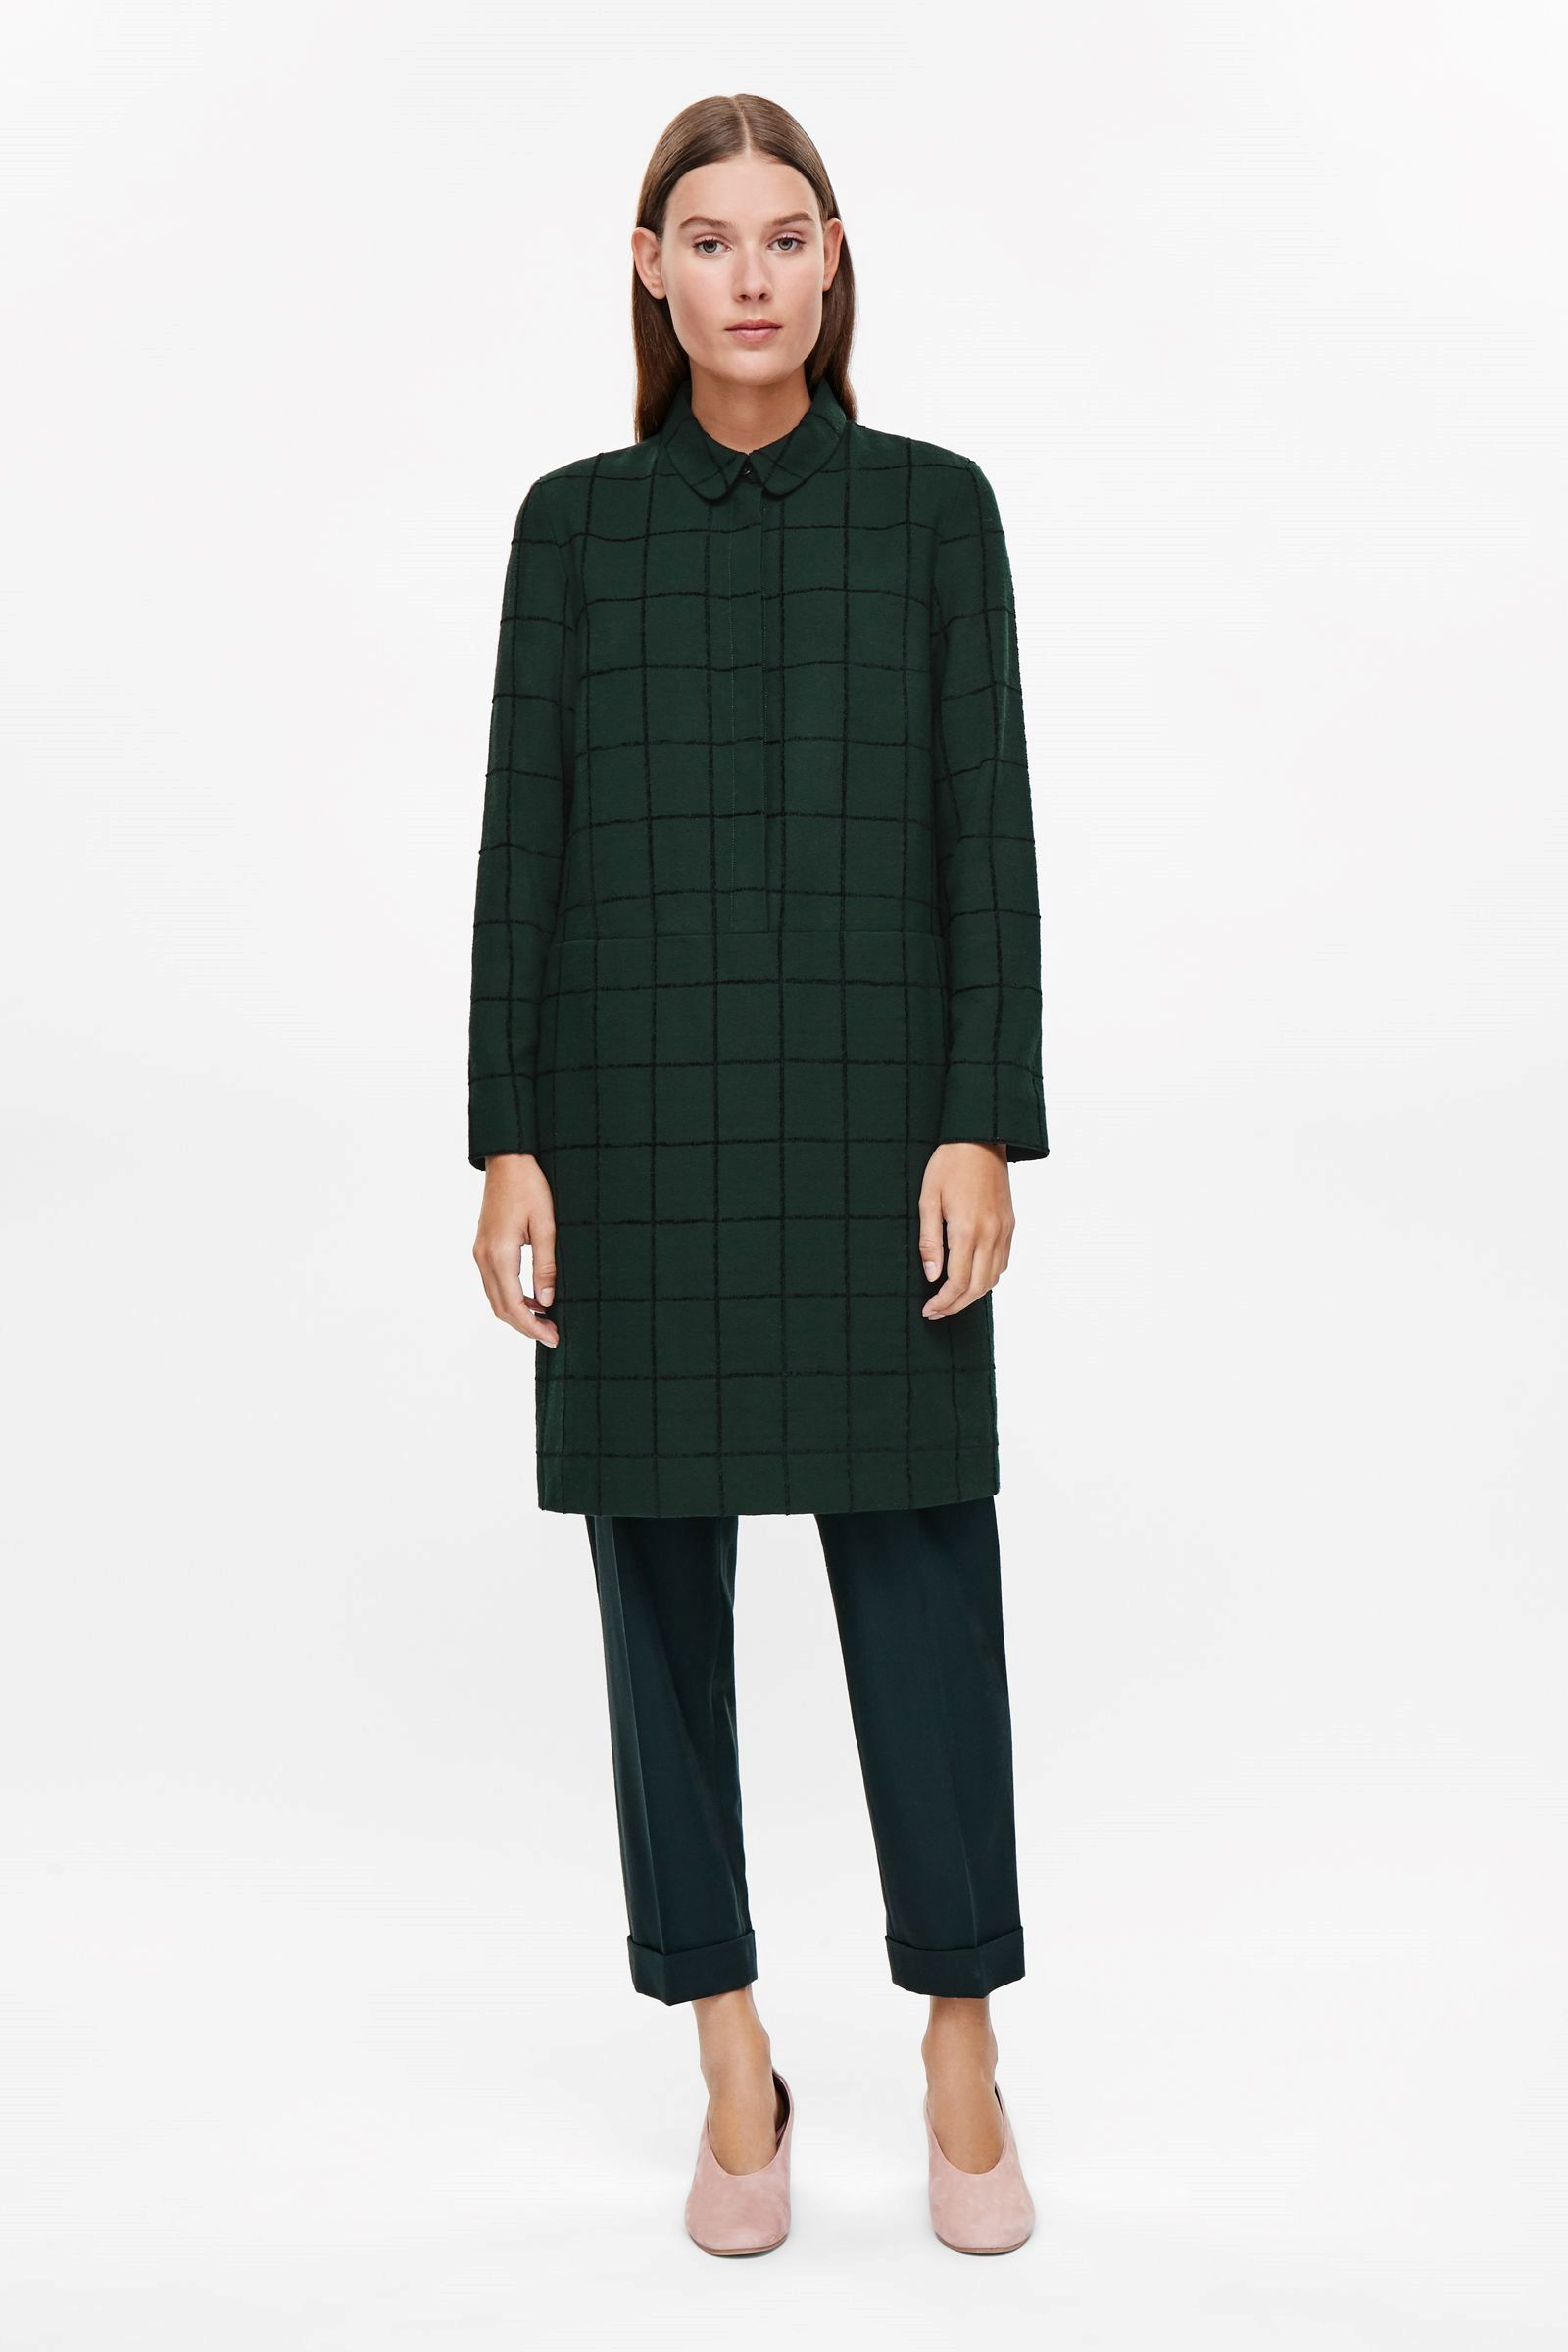 0bba8334beb9 COS image 1 of Checked shirt dress in Bottle Green | Fall to Winter ...